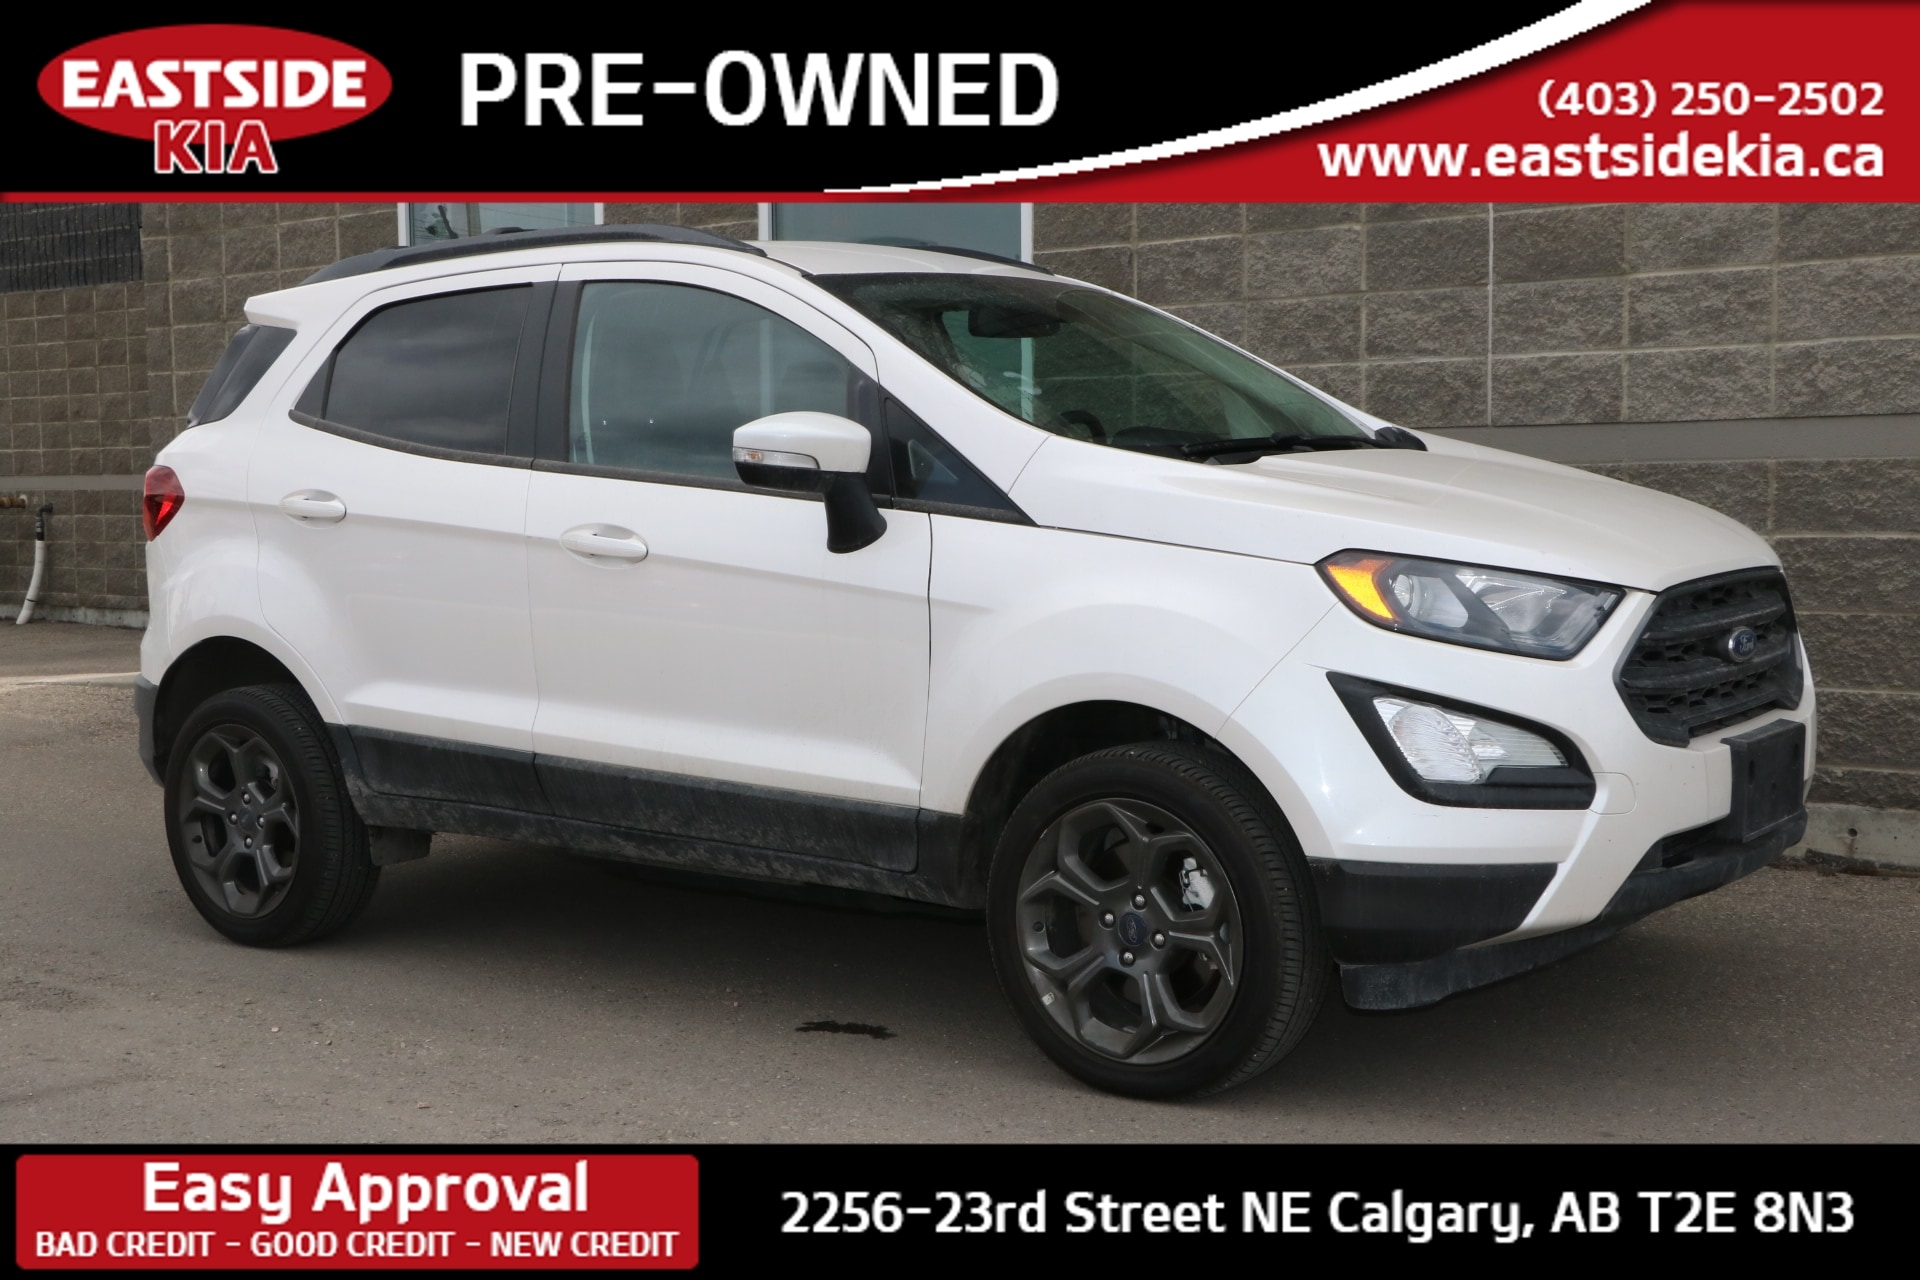 2018 Ford EcoSport SES AWD BLIND SPOT DETECT SUNROOF CAMERA HTD ST